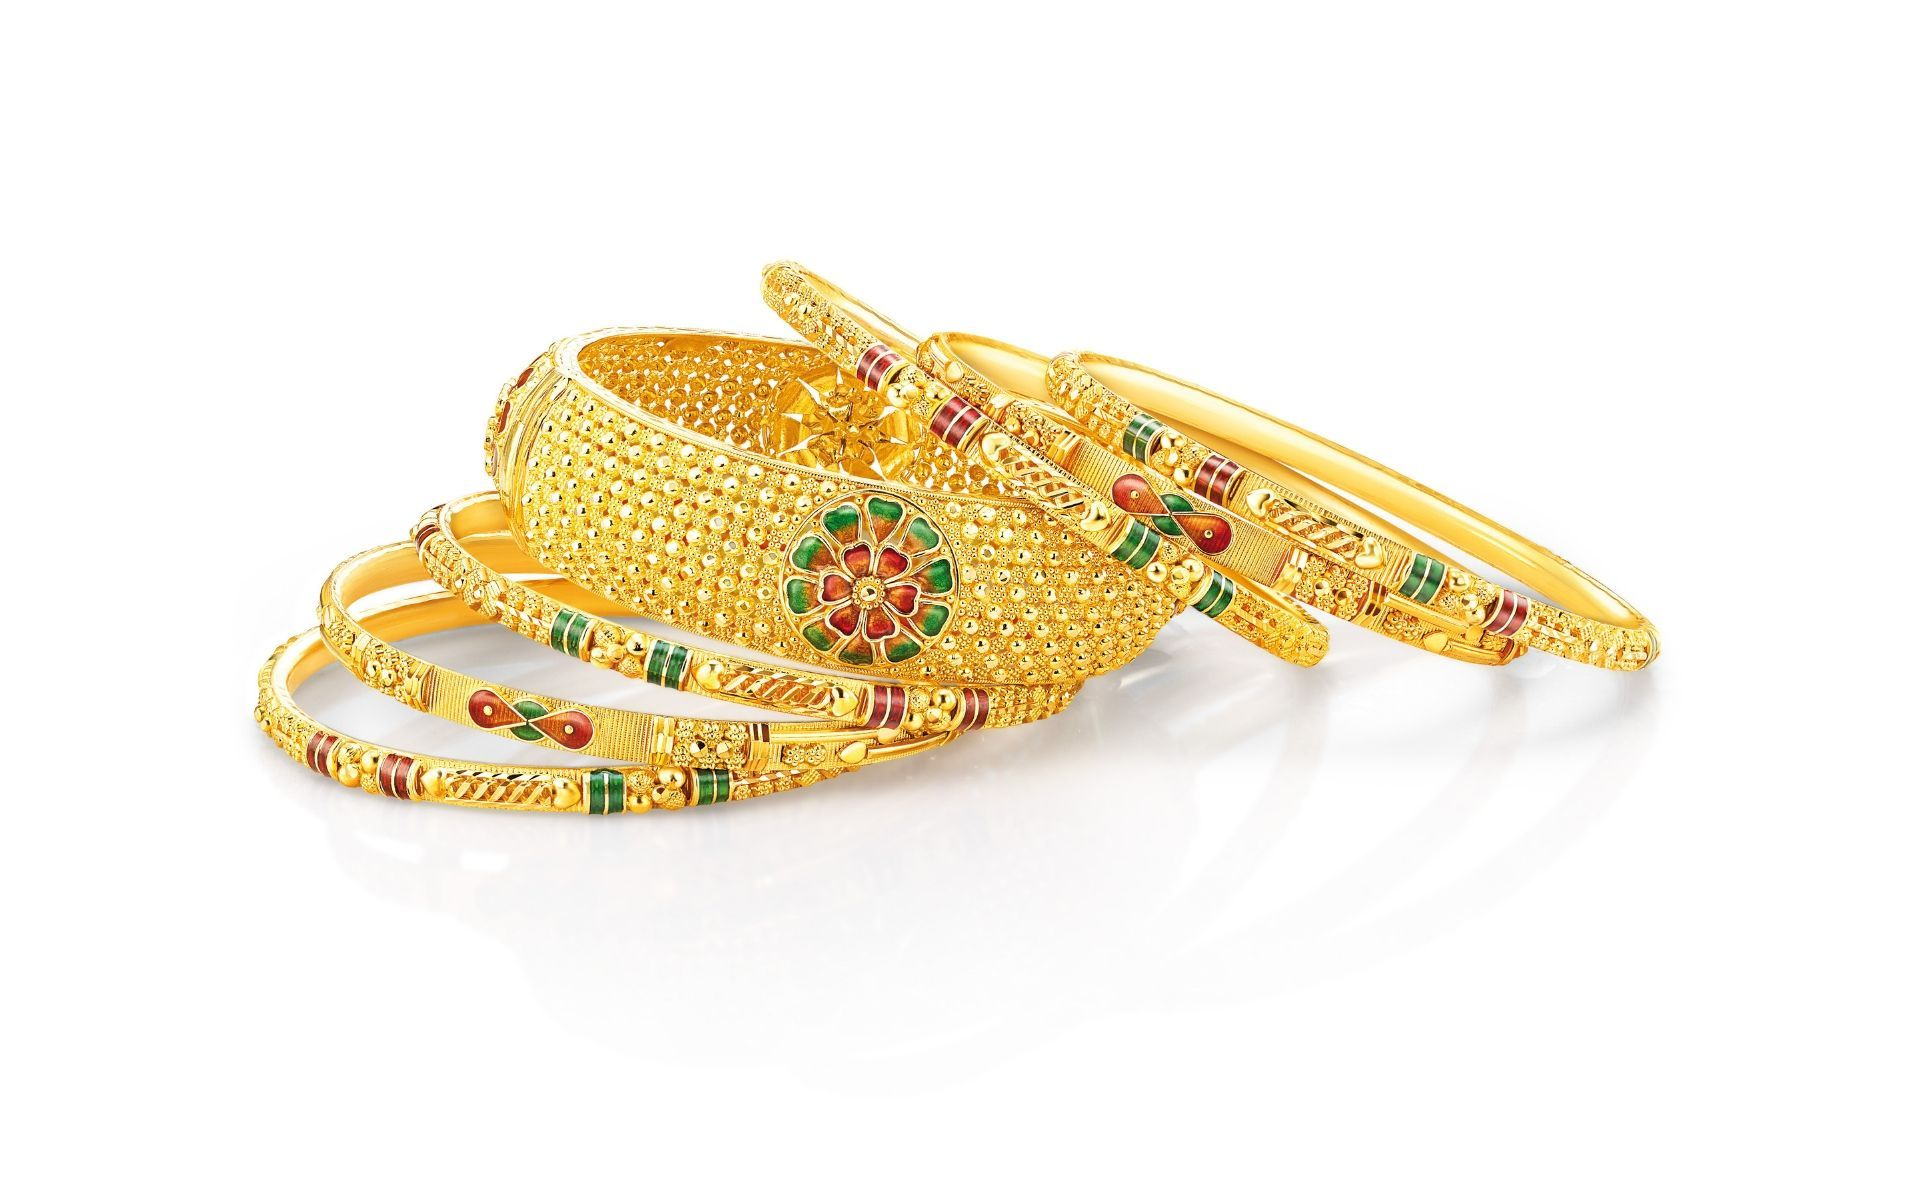 Traditional elements in your jewellery like these bangles are a must-have